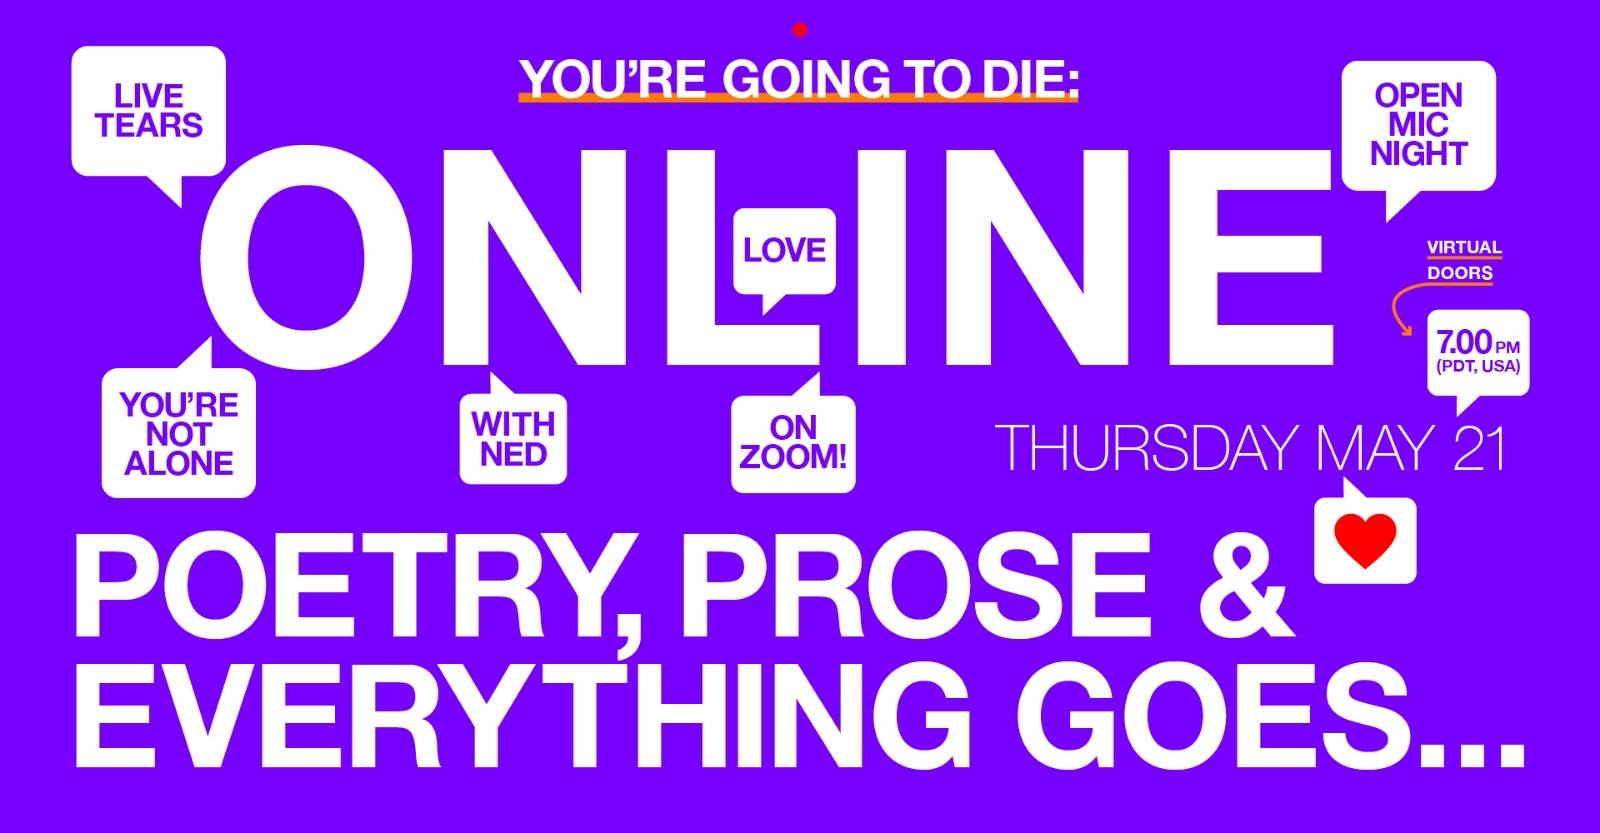 You're Going to Die: Poetry, Prose & Everything Goes Online!